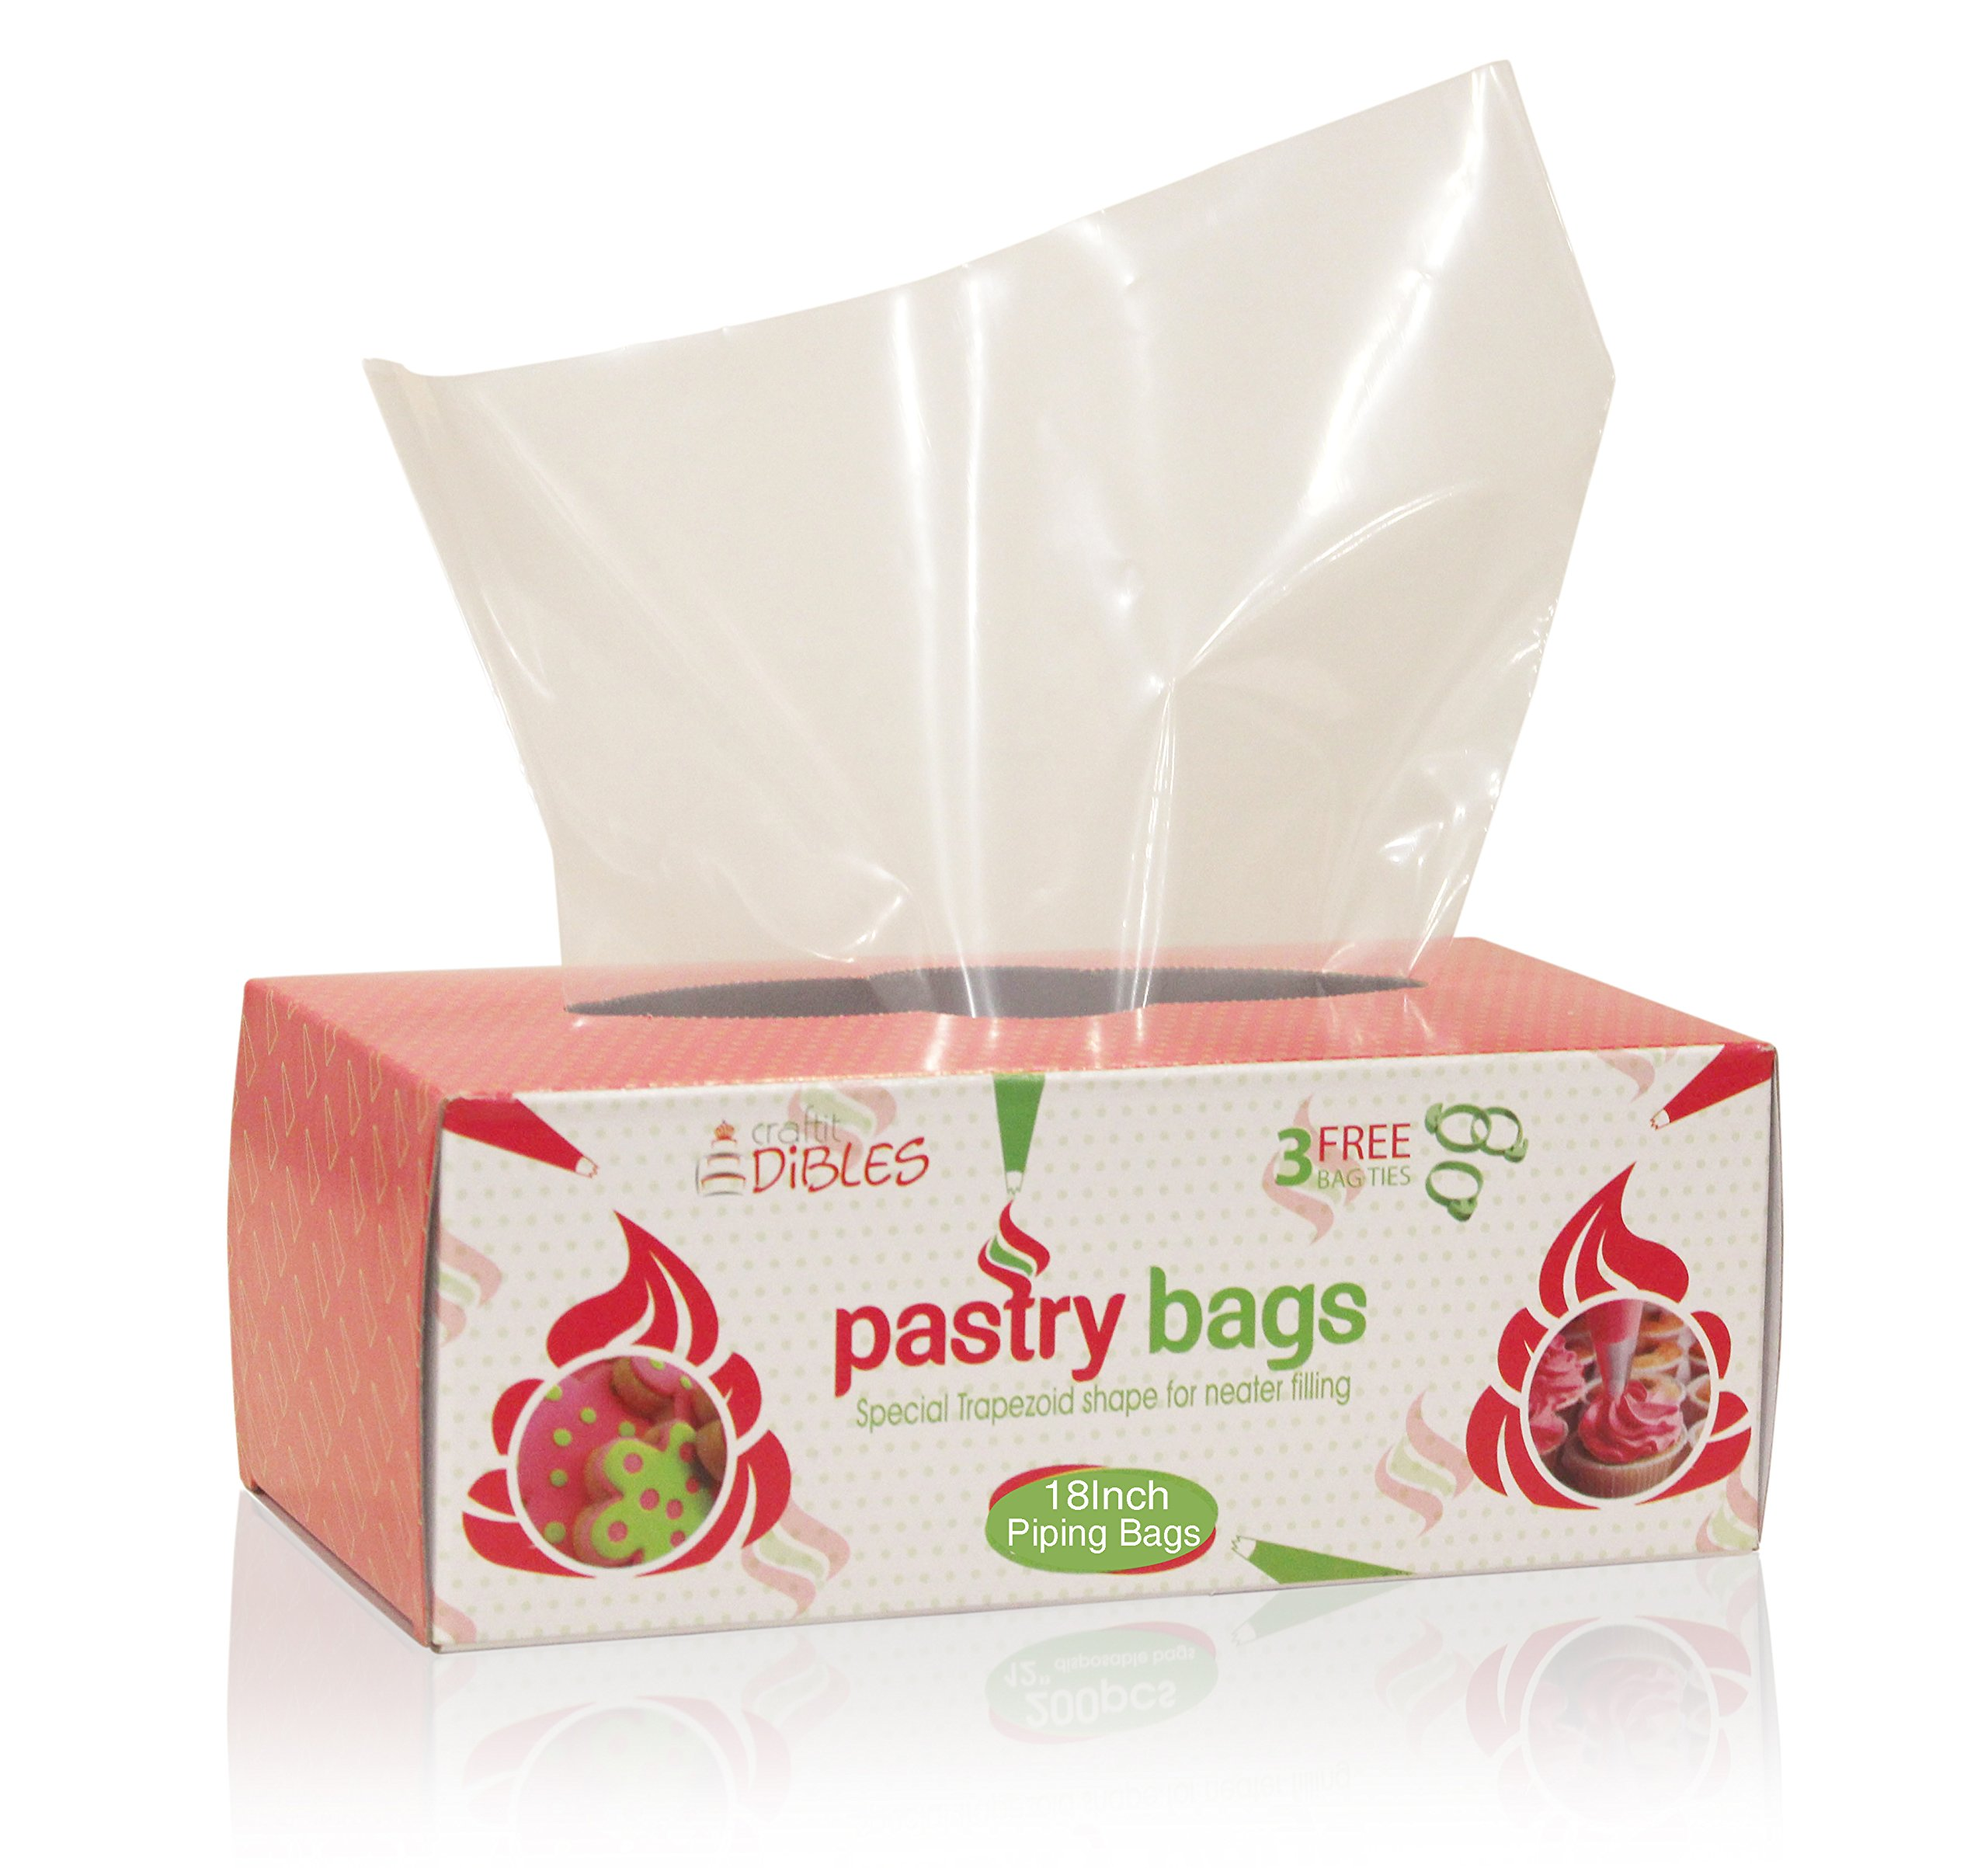 Disposable Pastry Bags, Extra Large - 18 Inch. 80 count Heavy Duty Icing Bags in dispenser box. Microwave safe. 3 Free Piping Bag Ties included!